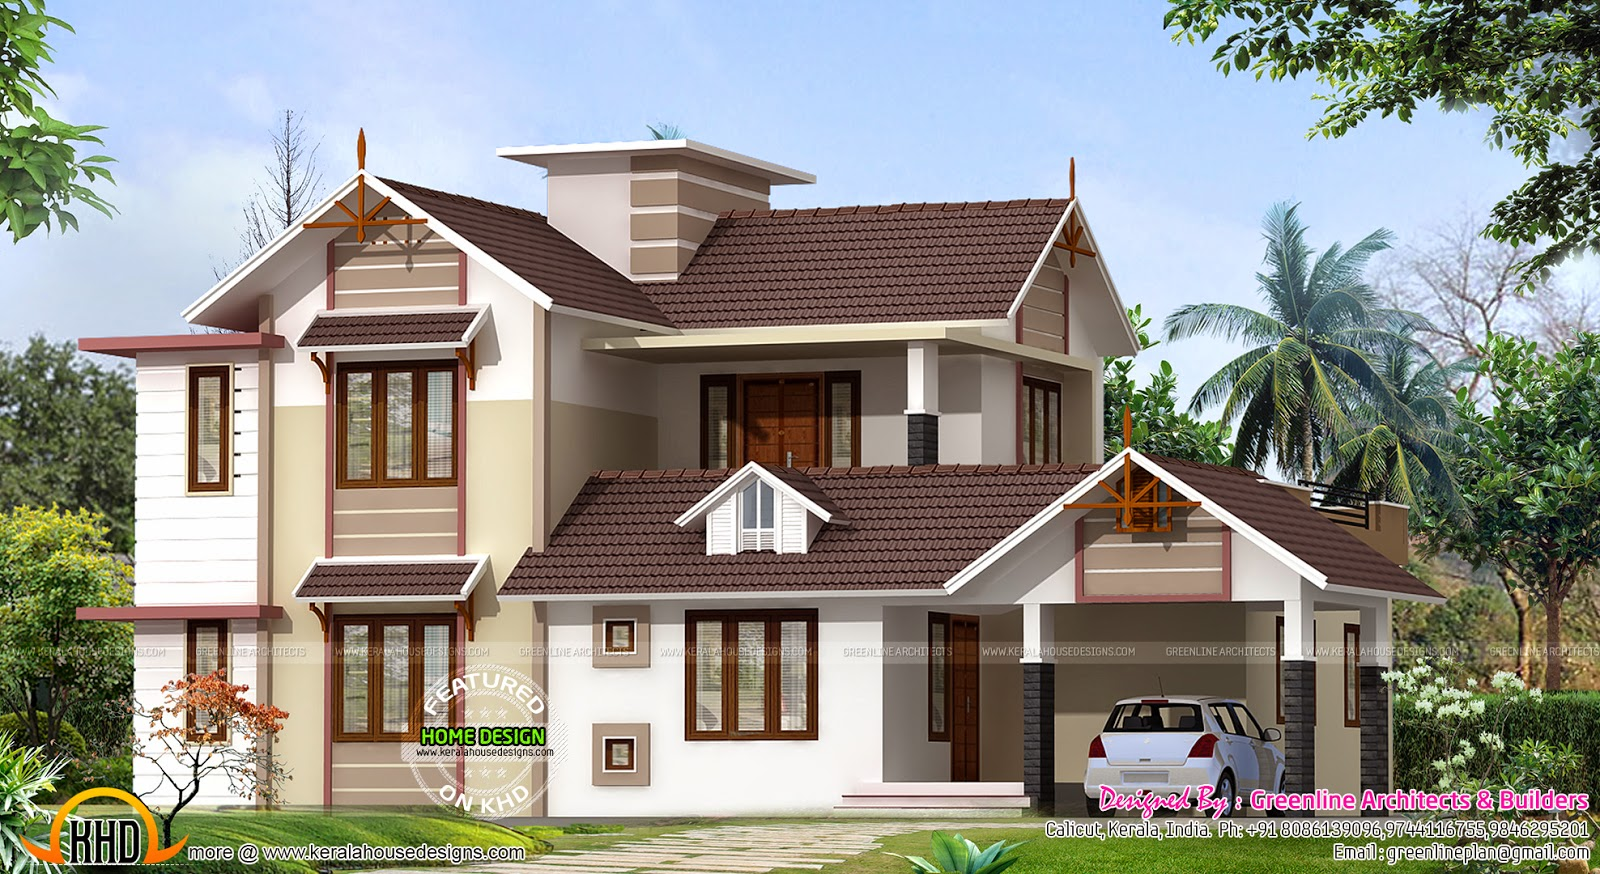 2400 sq ft new house design kerala home design and floor for House and design